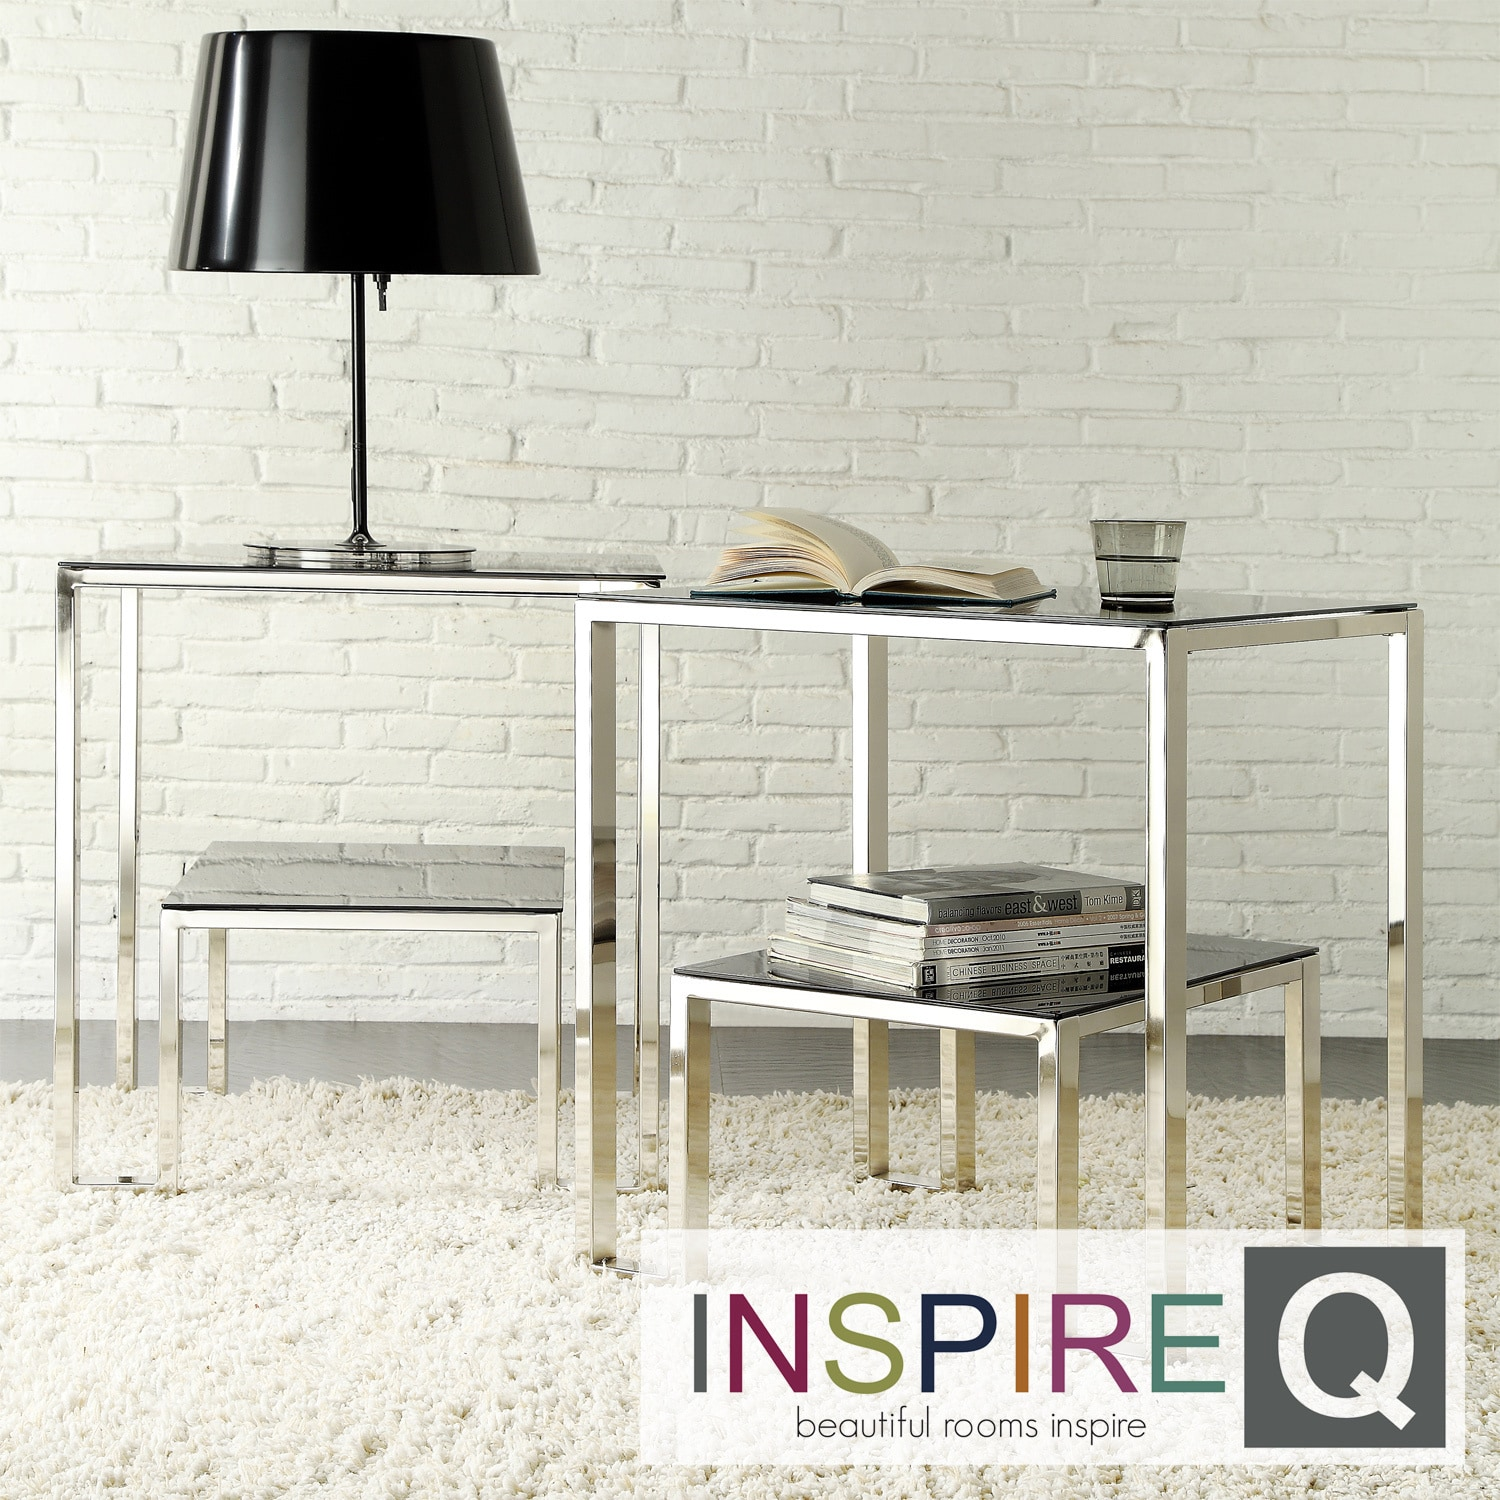 INSPIRE Q Alta Vista Black + Chrome Dual Metal Accent Table